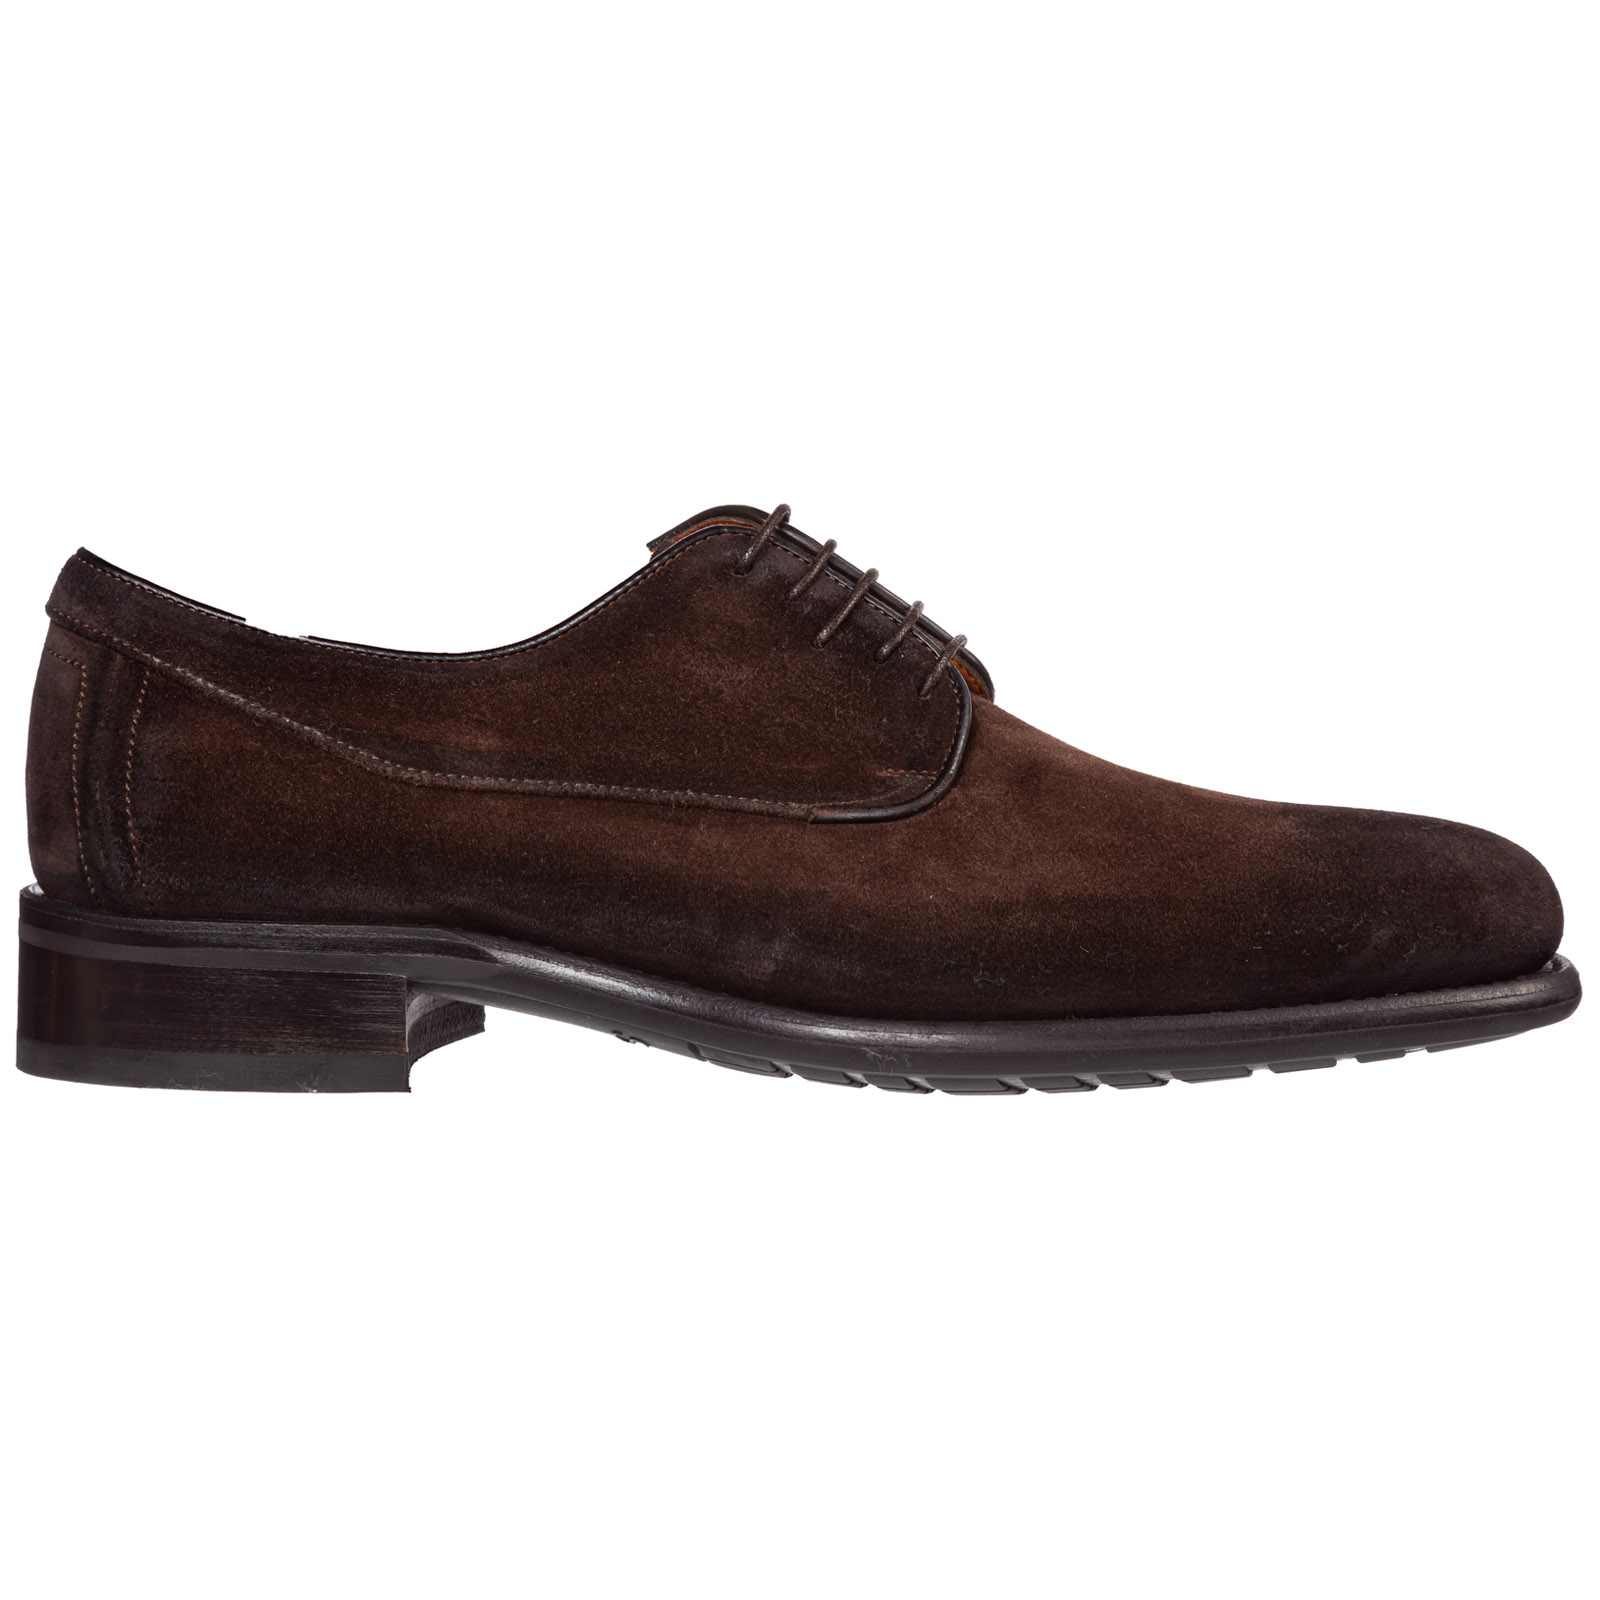 Santoni Shoes MEN'S CLASSIC SUEDE LACE UP LACED FORMAL SHOES DERBY